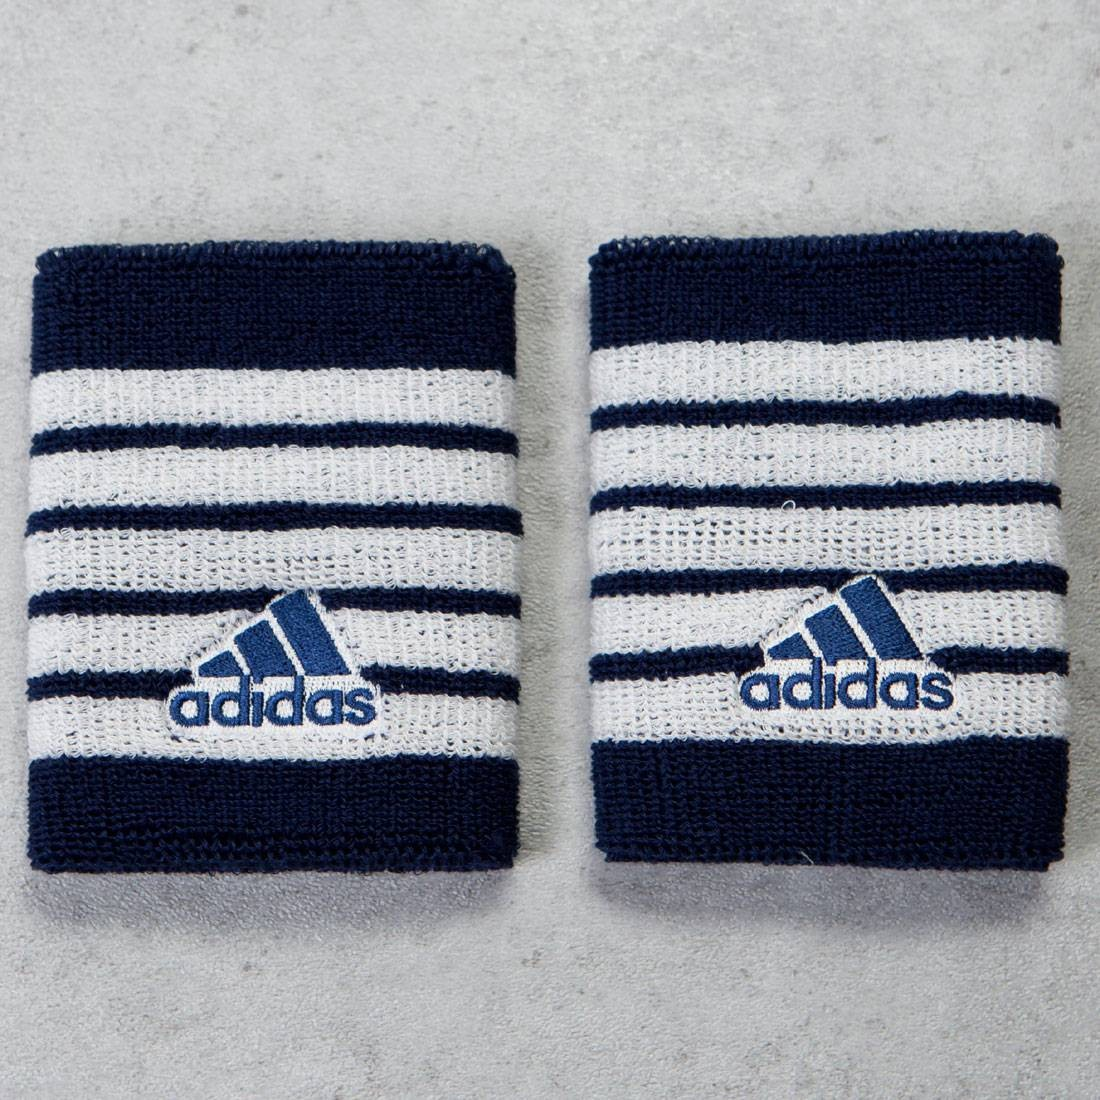 Adidas x Pharrell Williams New York Wristband (white / chalk white / navy)